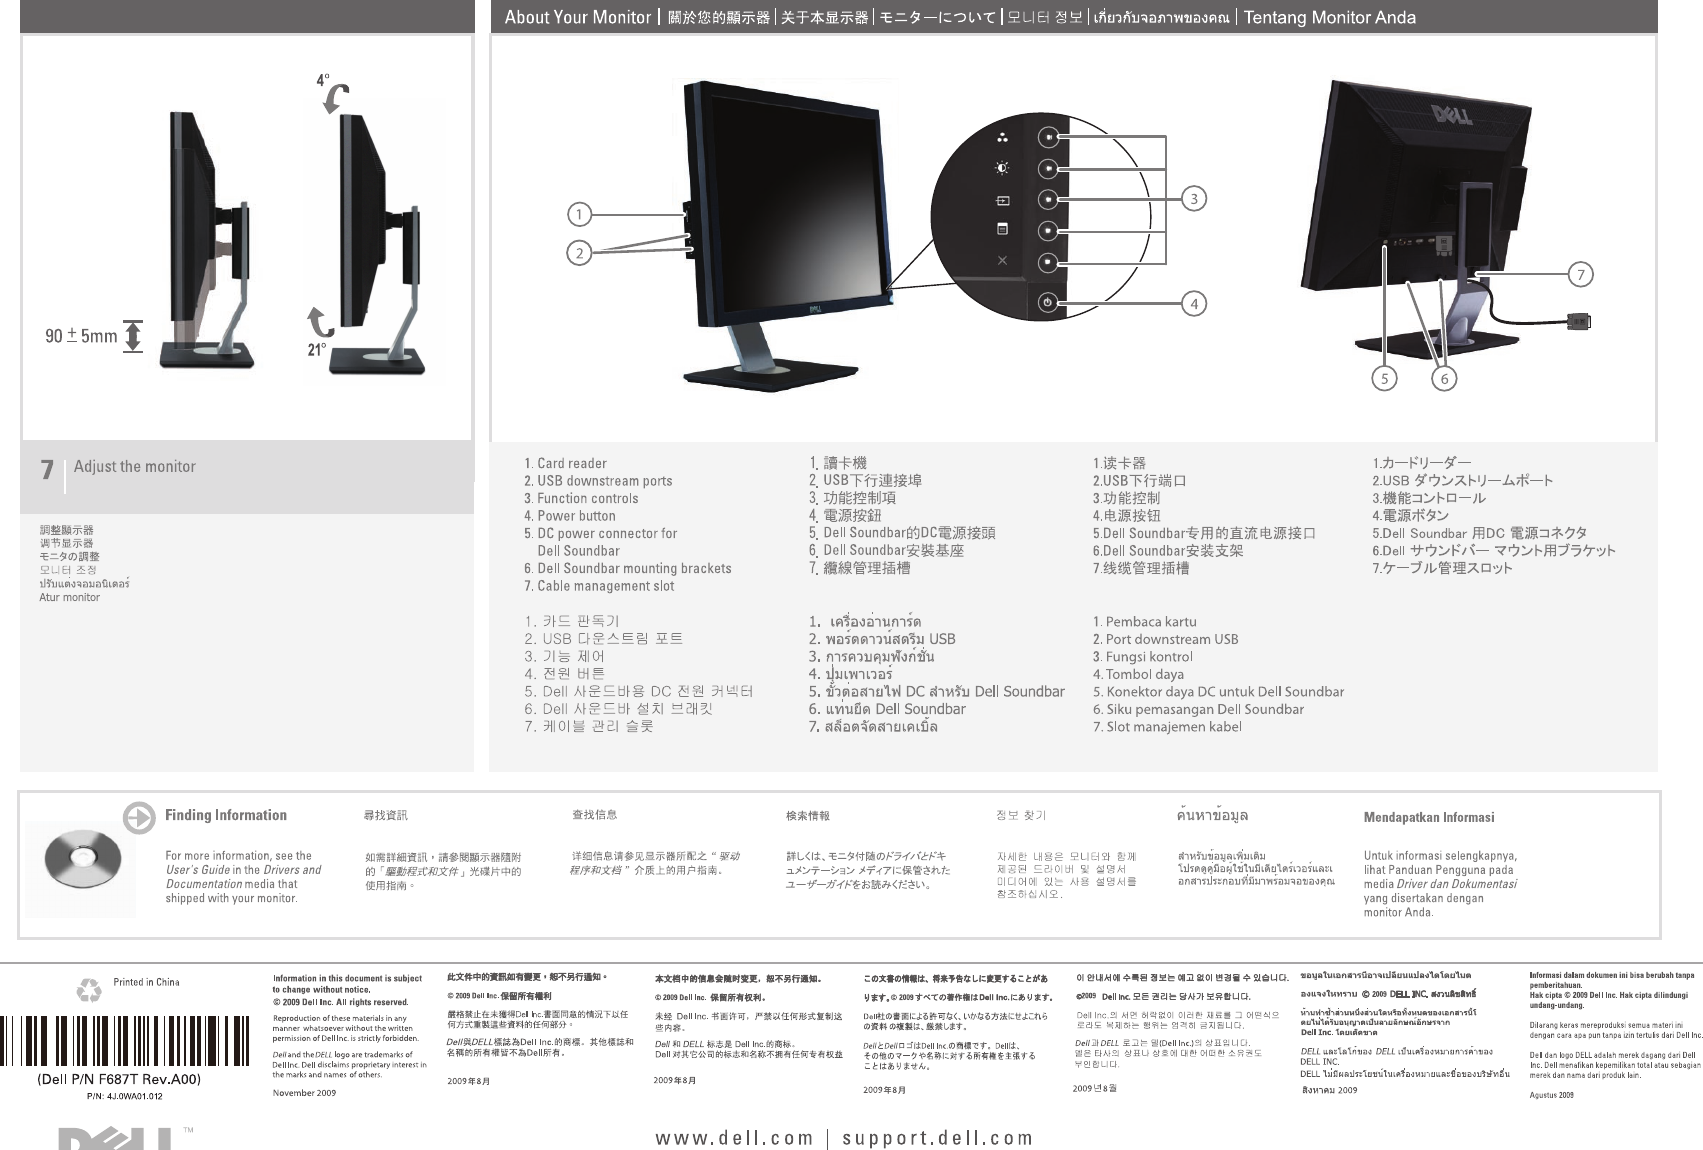 dell ultrasharp u2711 manual open source user manual u2022 rh dramatic varieties com Dell UltraSharp U2713HM Dell UltraSharp Monitor